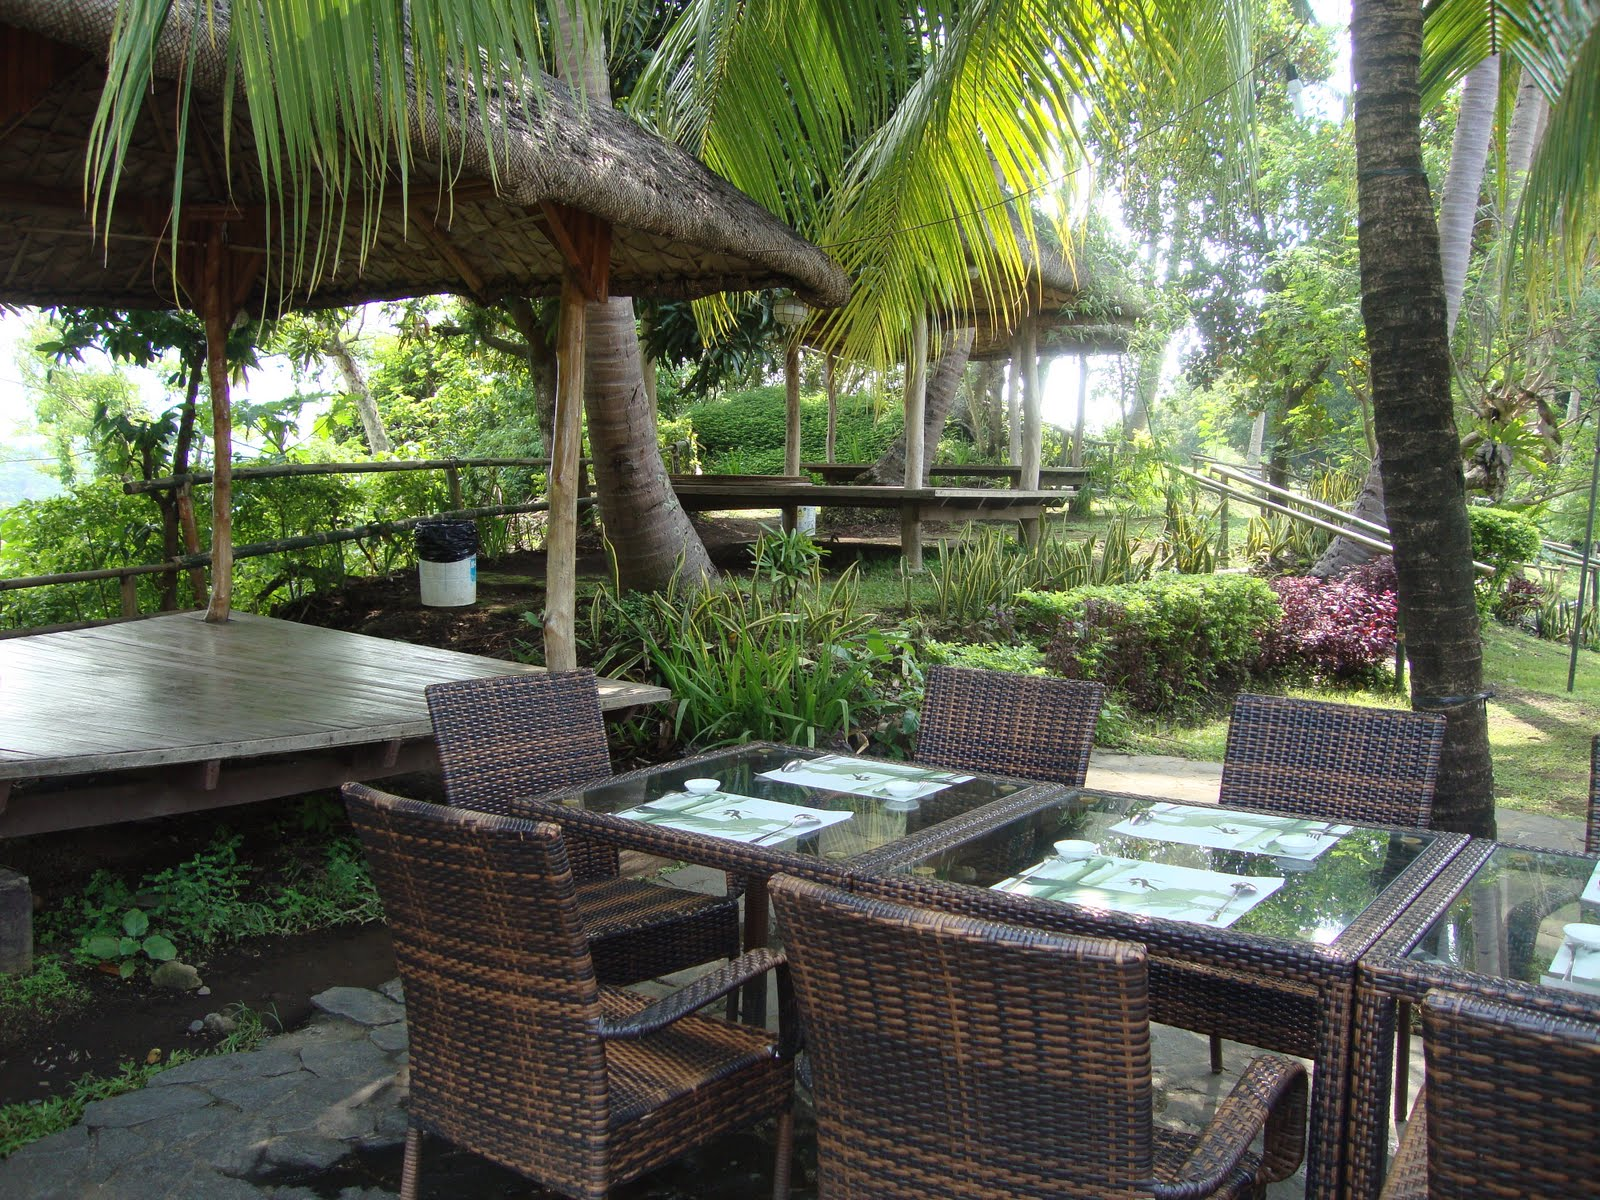 Patio Filipino Is Situated On The Mountain Of Hacienda Cascada, Where It  Holds Also, The Amansinaya Mountain Resort And The Pugad Lawin Adventure  Camp.